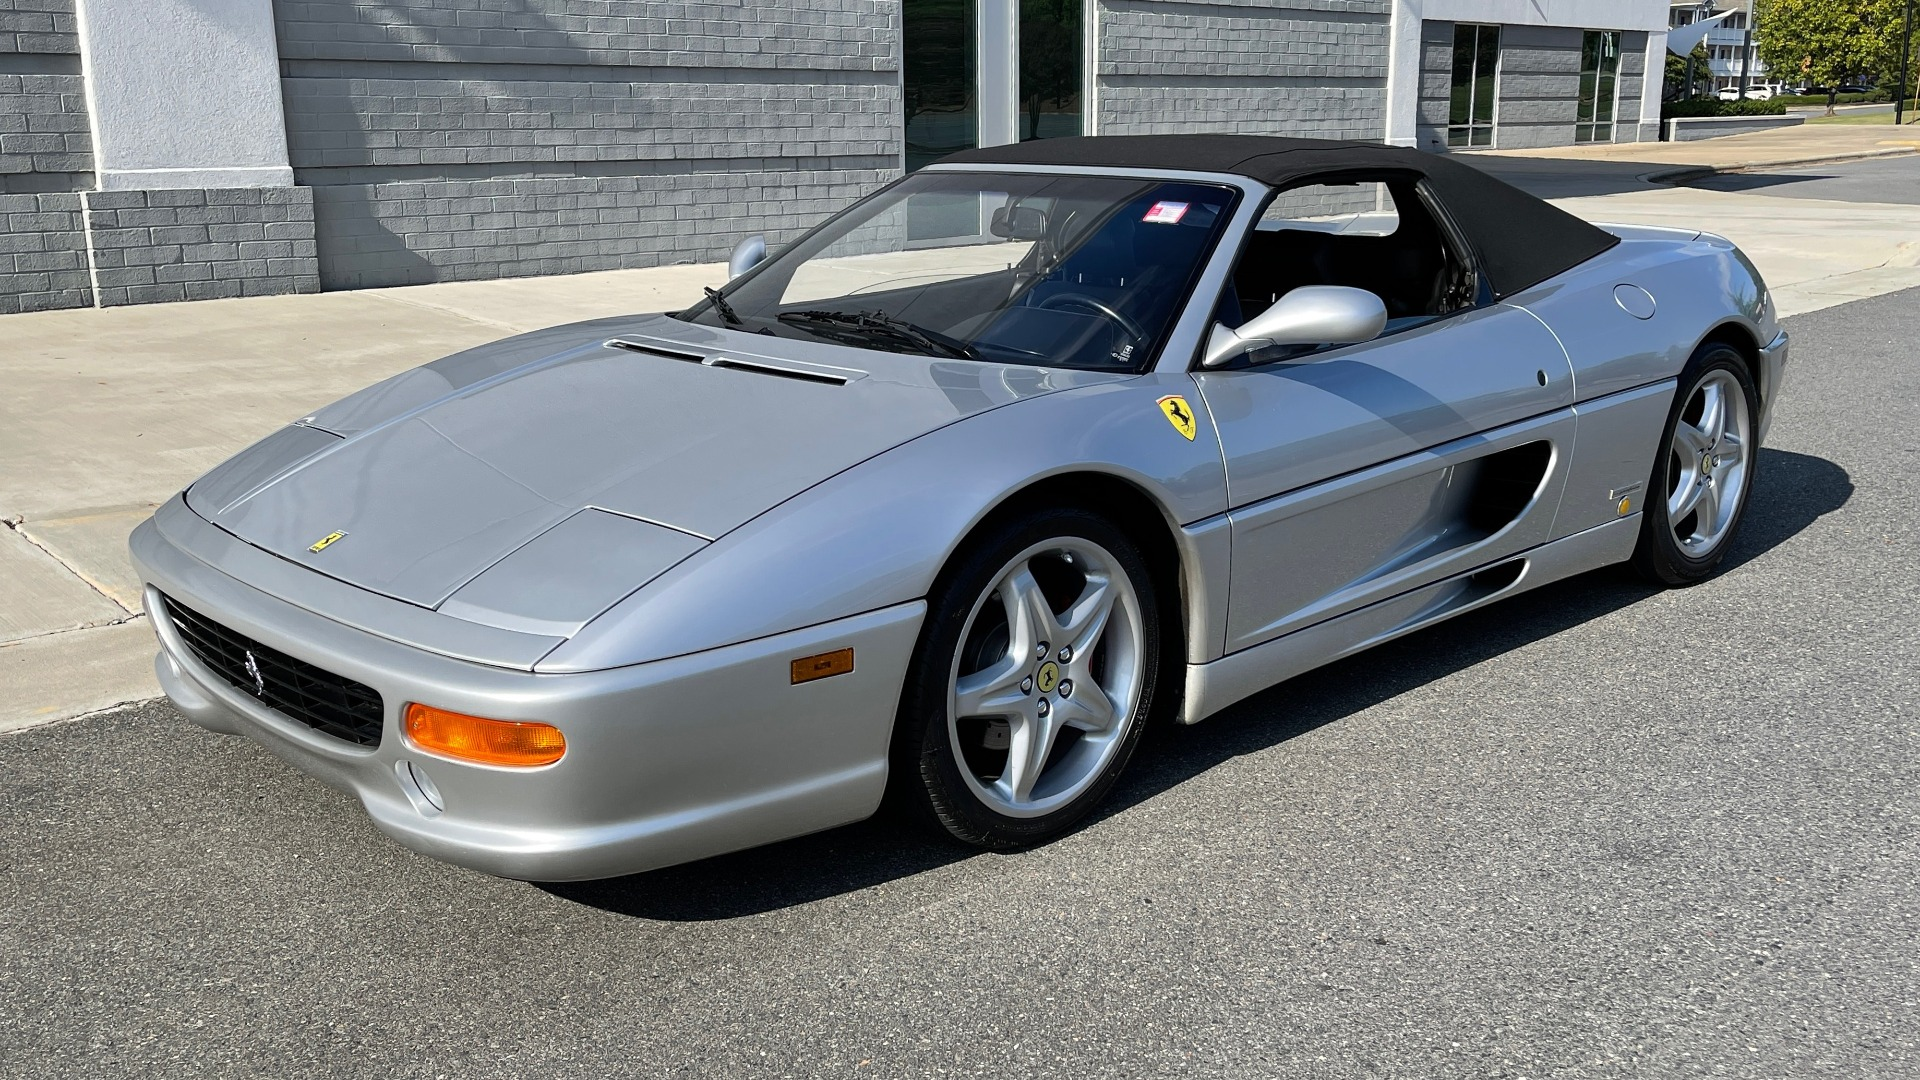 Used 1999 Ferrari F355 SPIDER for sale $95,000 at Formula Imports in Charlotte NC 28227 7